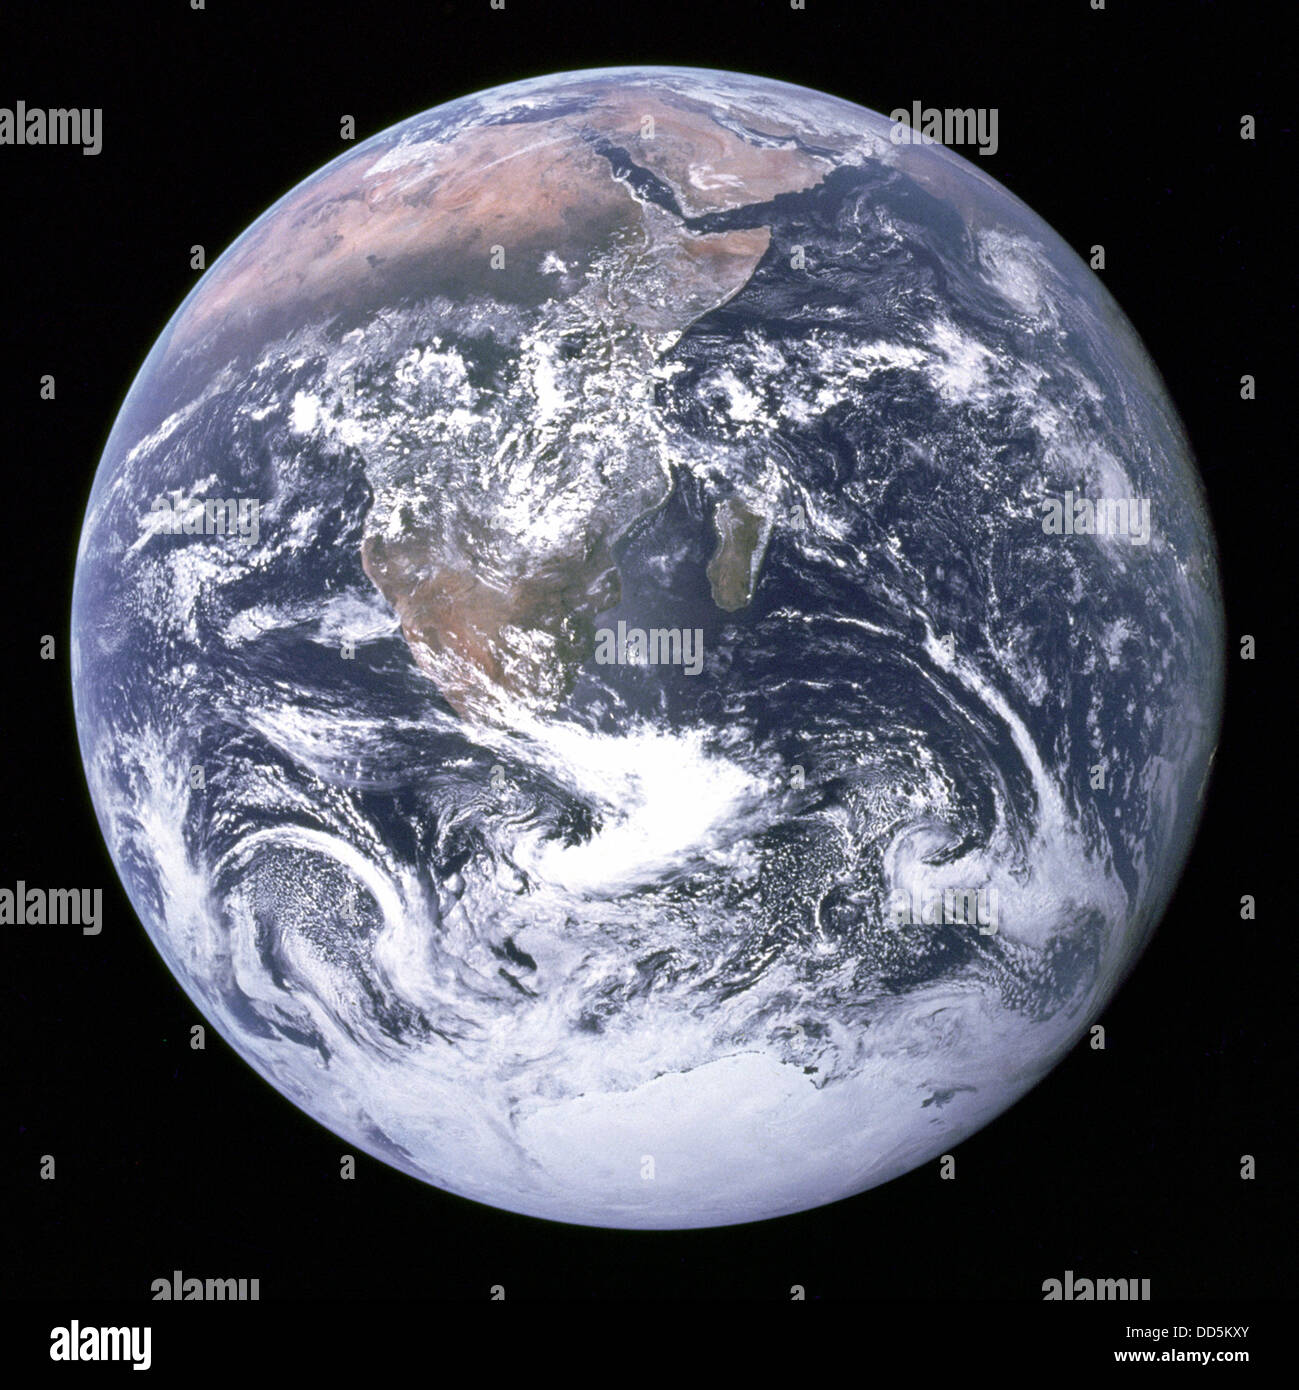 The Earth seen from space. Stock Photo